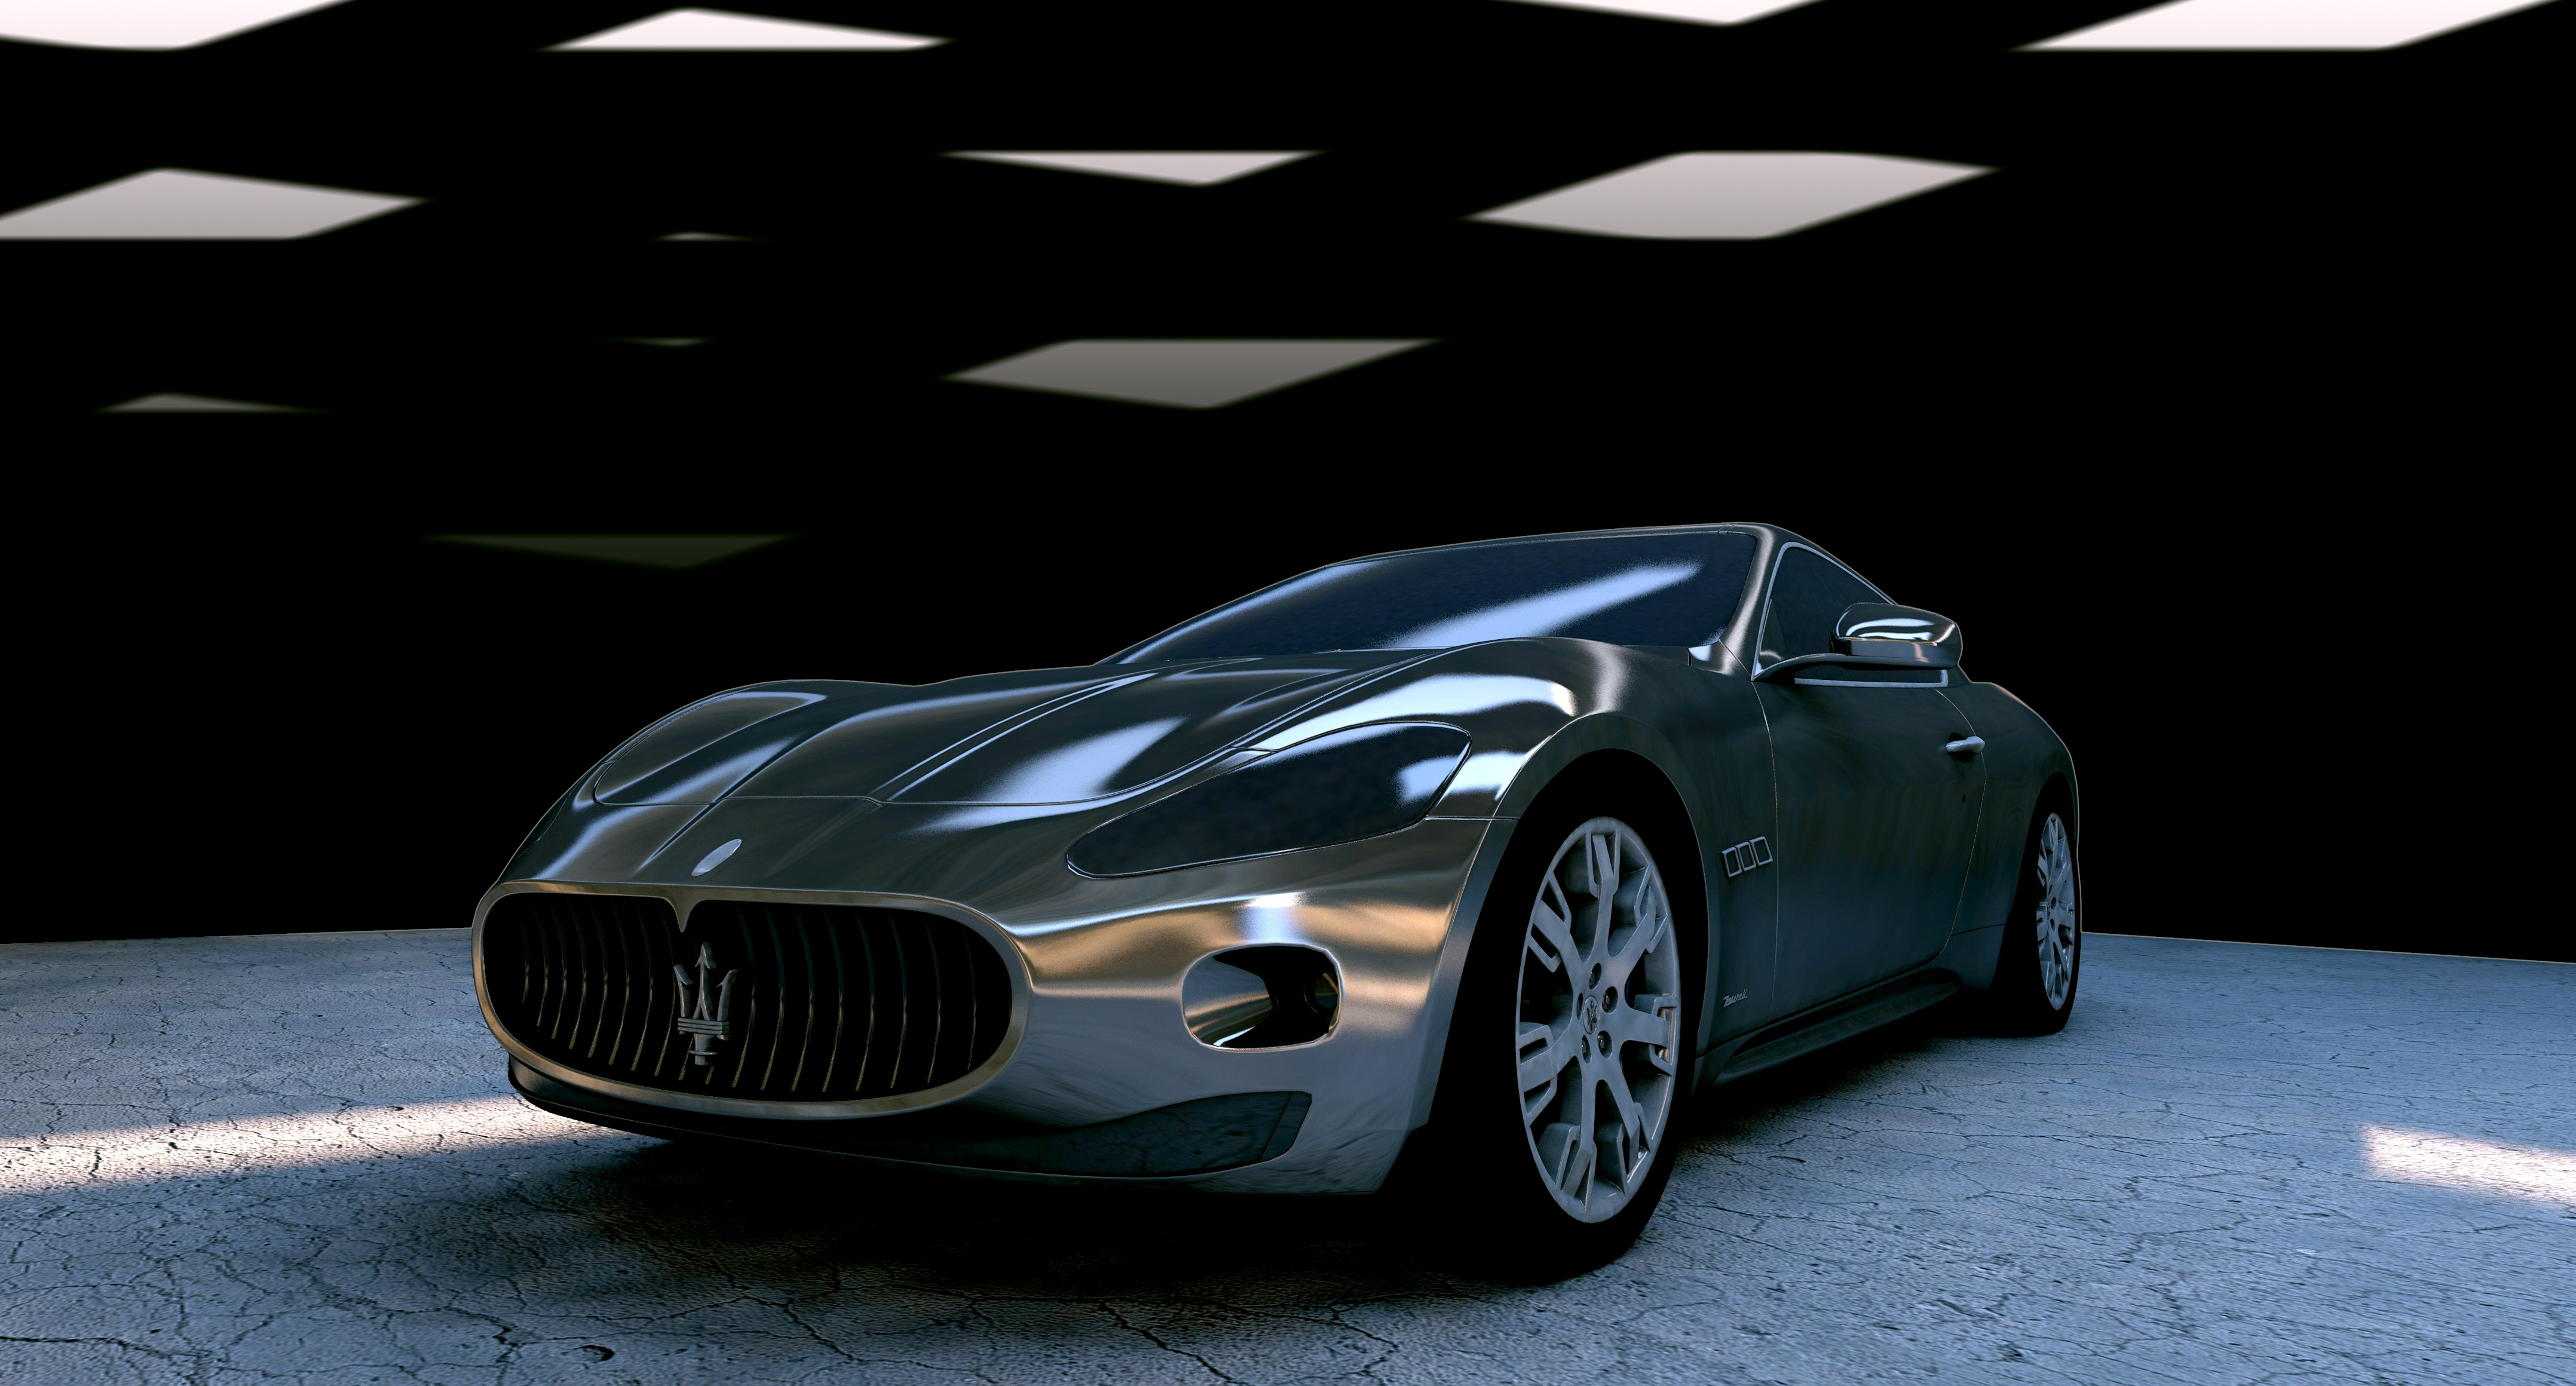 125240 download wallpaper Cars, Maserati, Maserati Gt, Side View screensavers and pictures for free